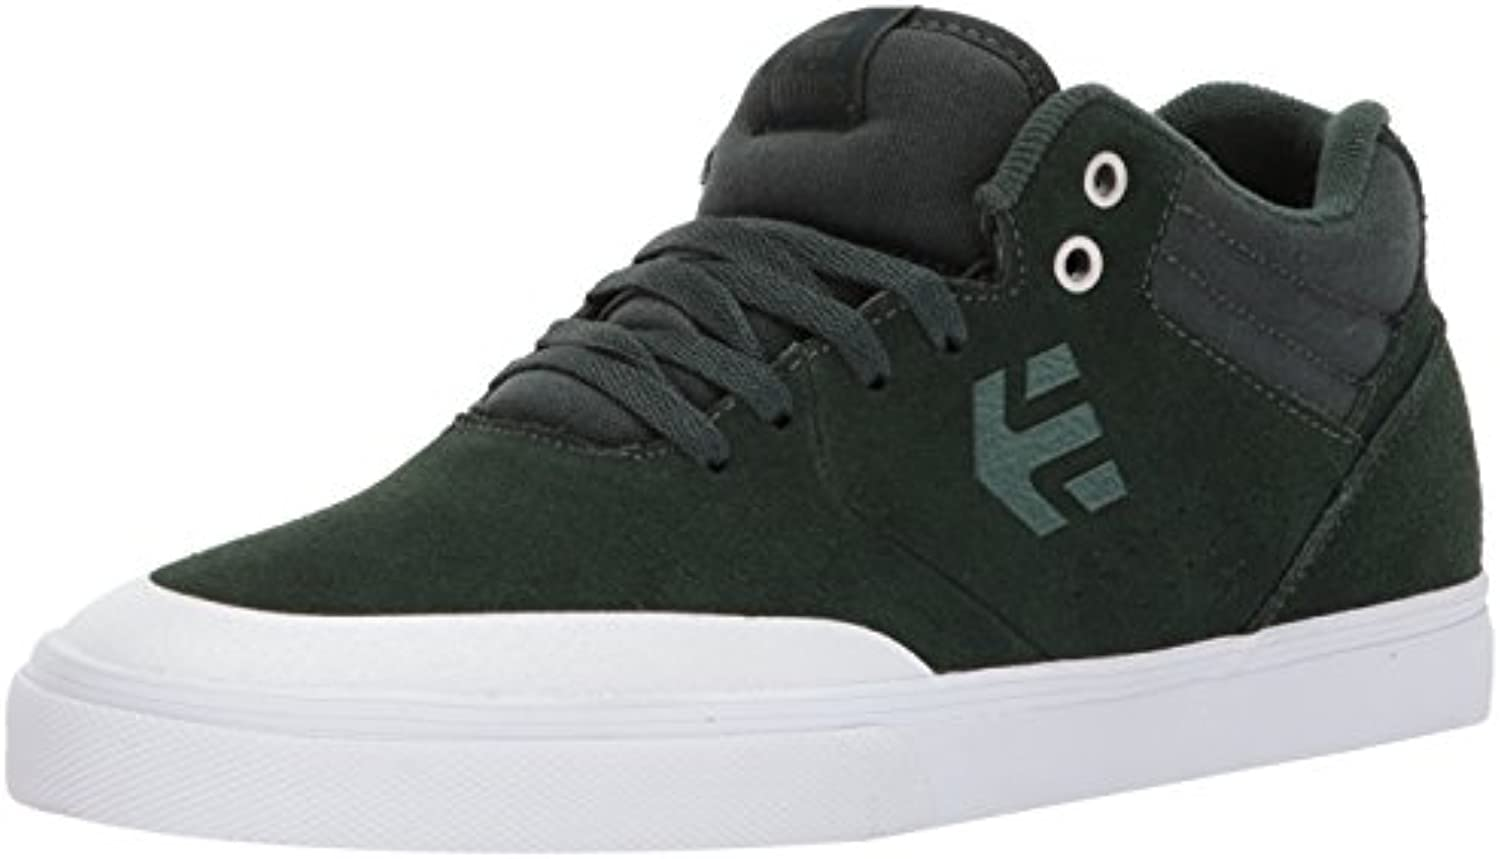 Etnies Marana Vulc Mt Green/White 42.5 EU (9.5 US / 8.5 UK)  -